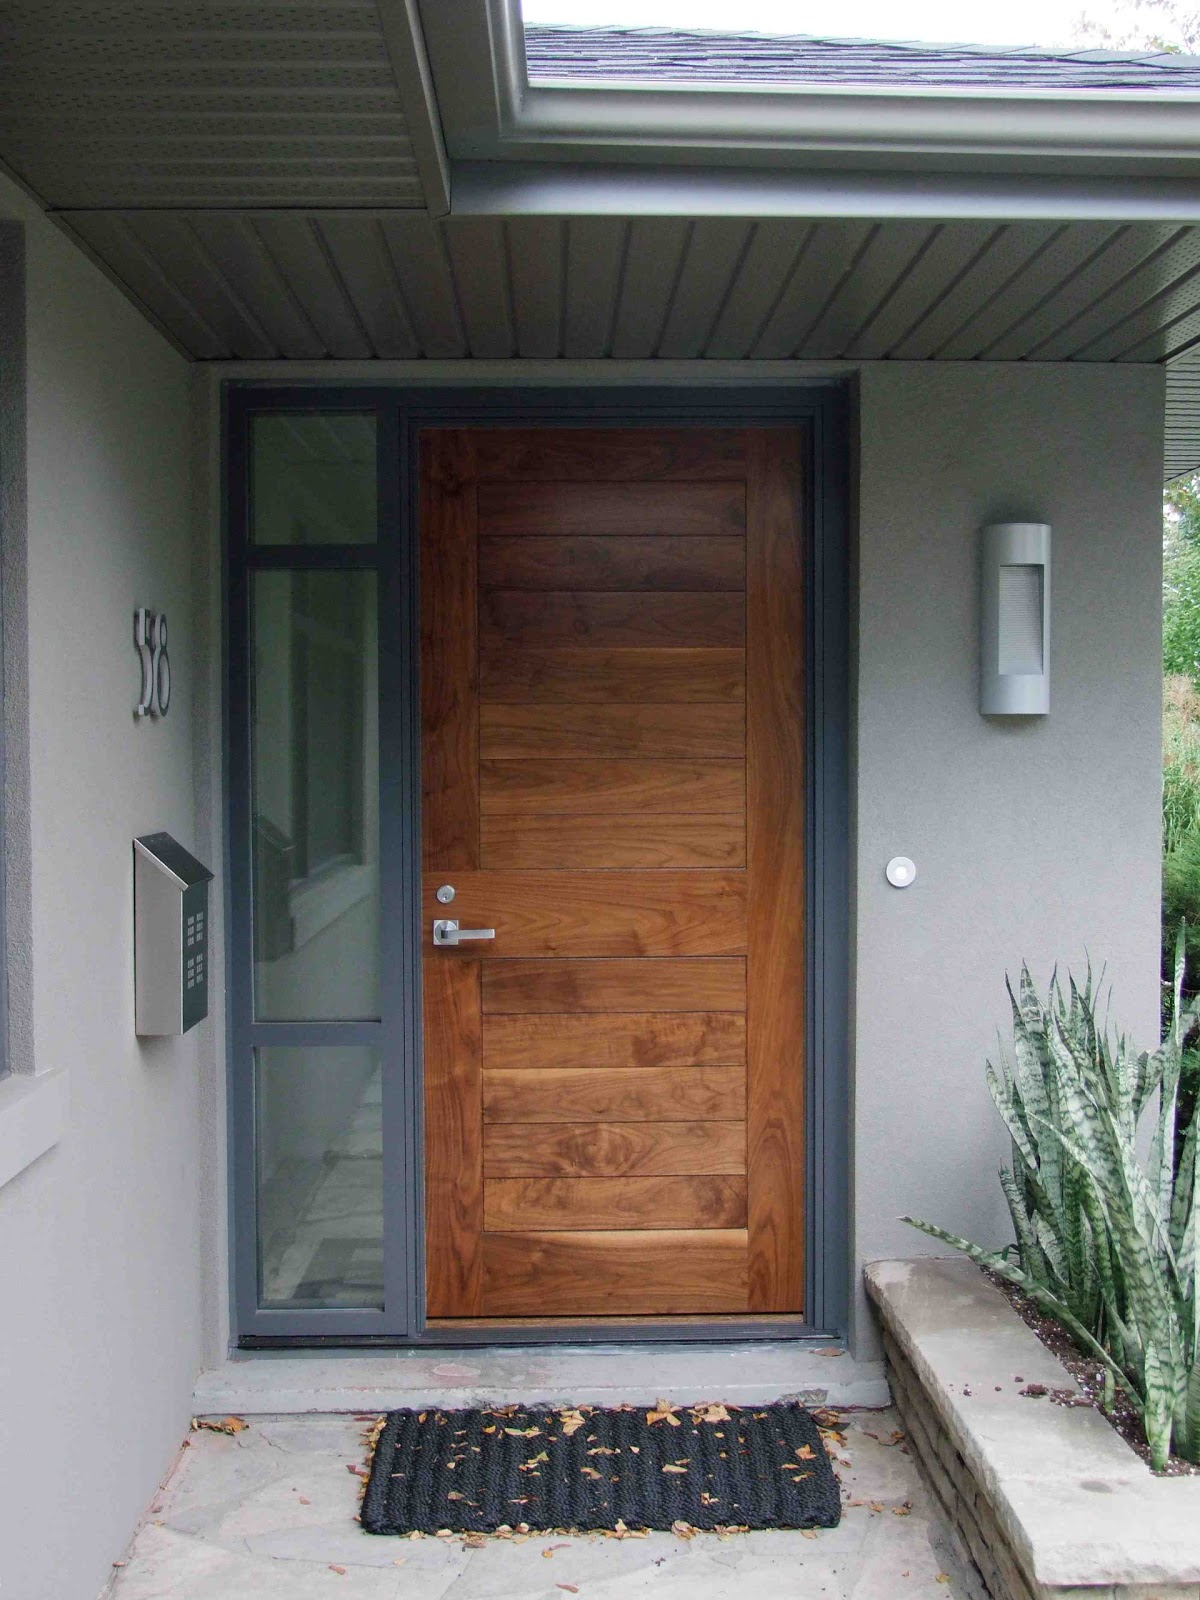 Creed 70 39 s bungalow makes a modern impression - Modern front door designs ...